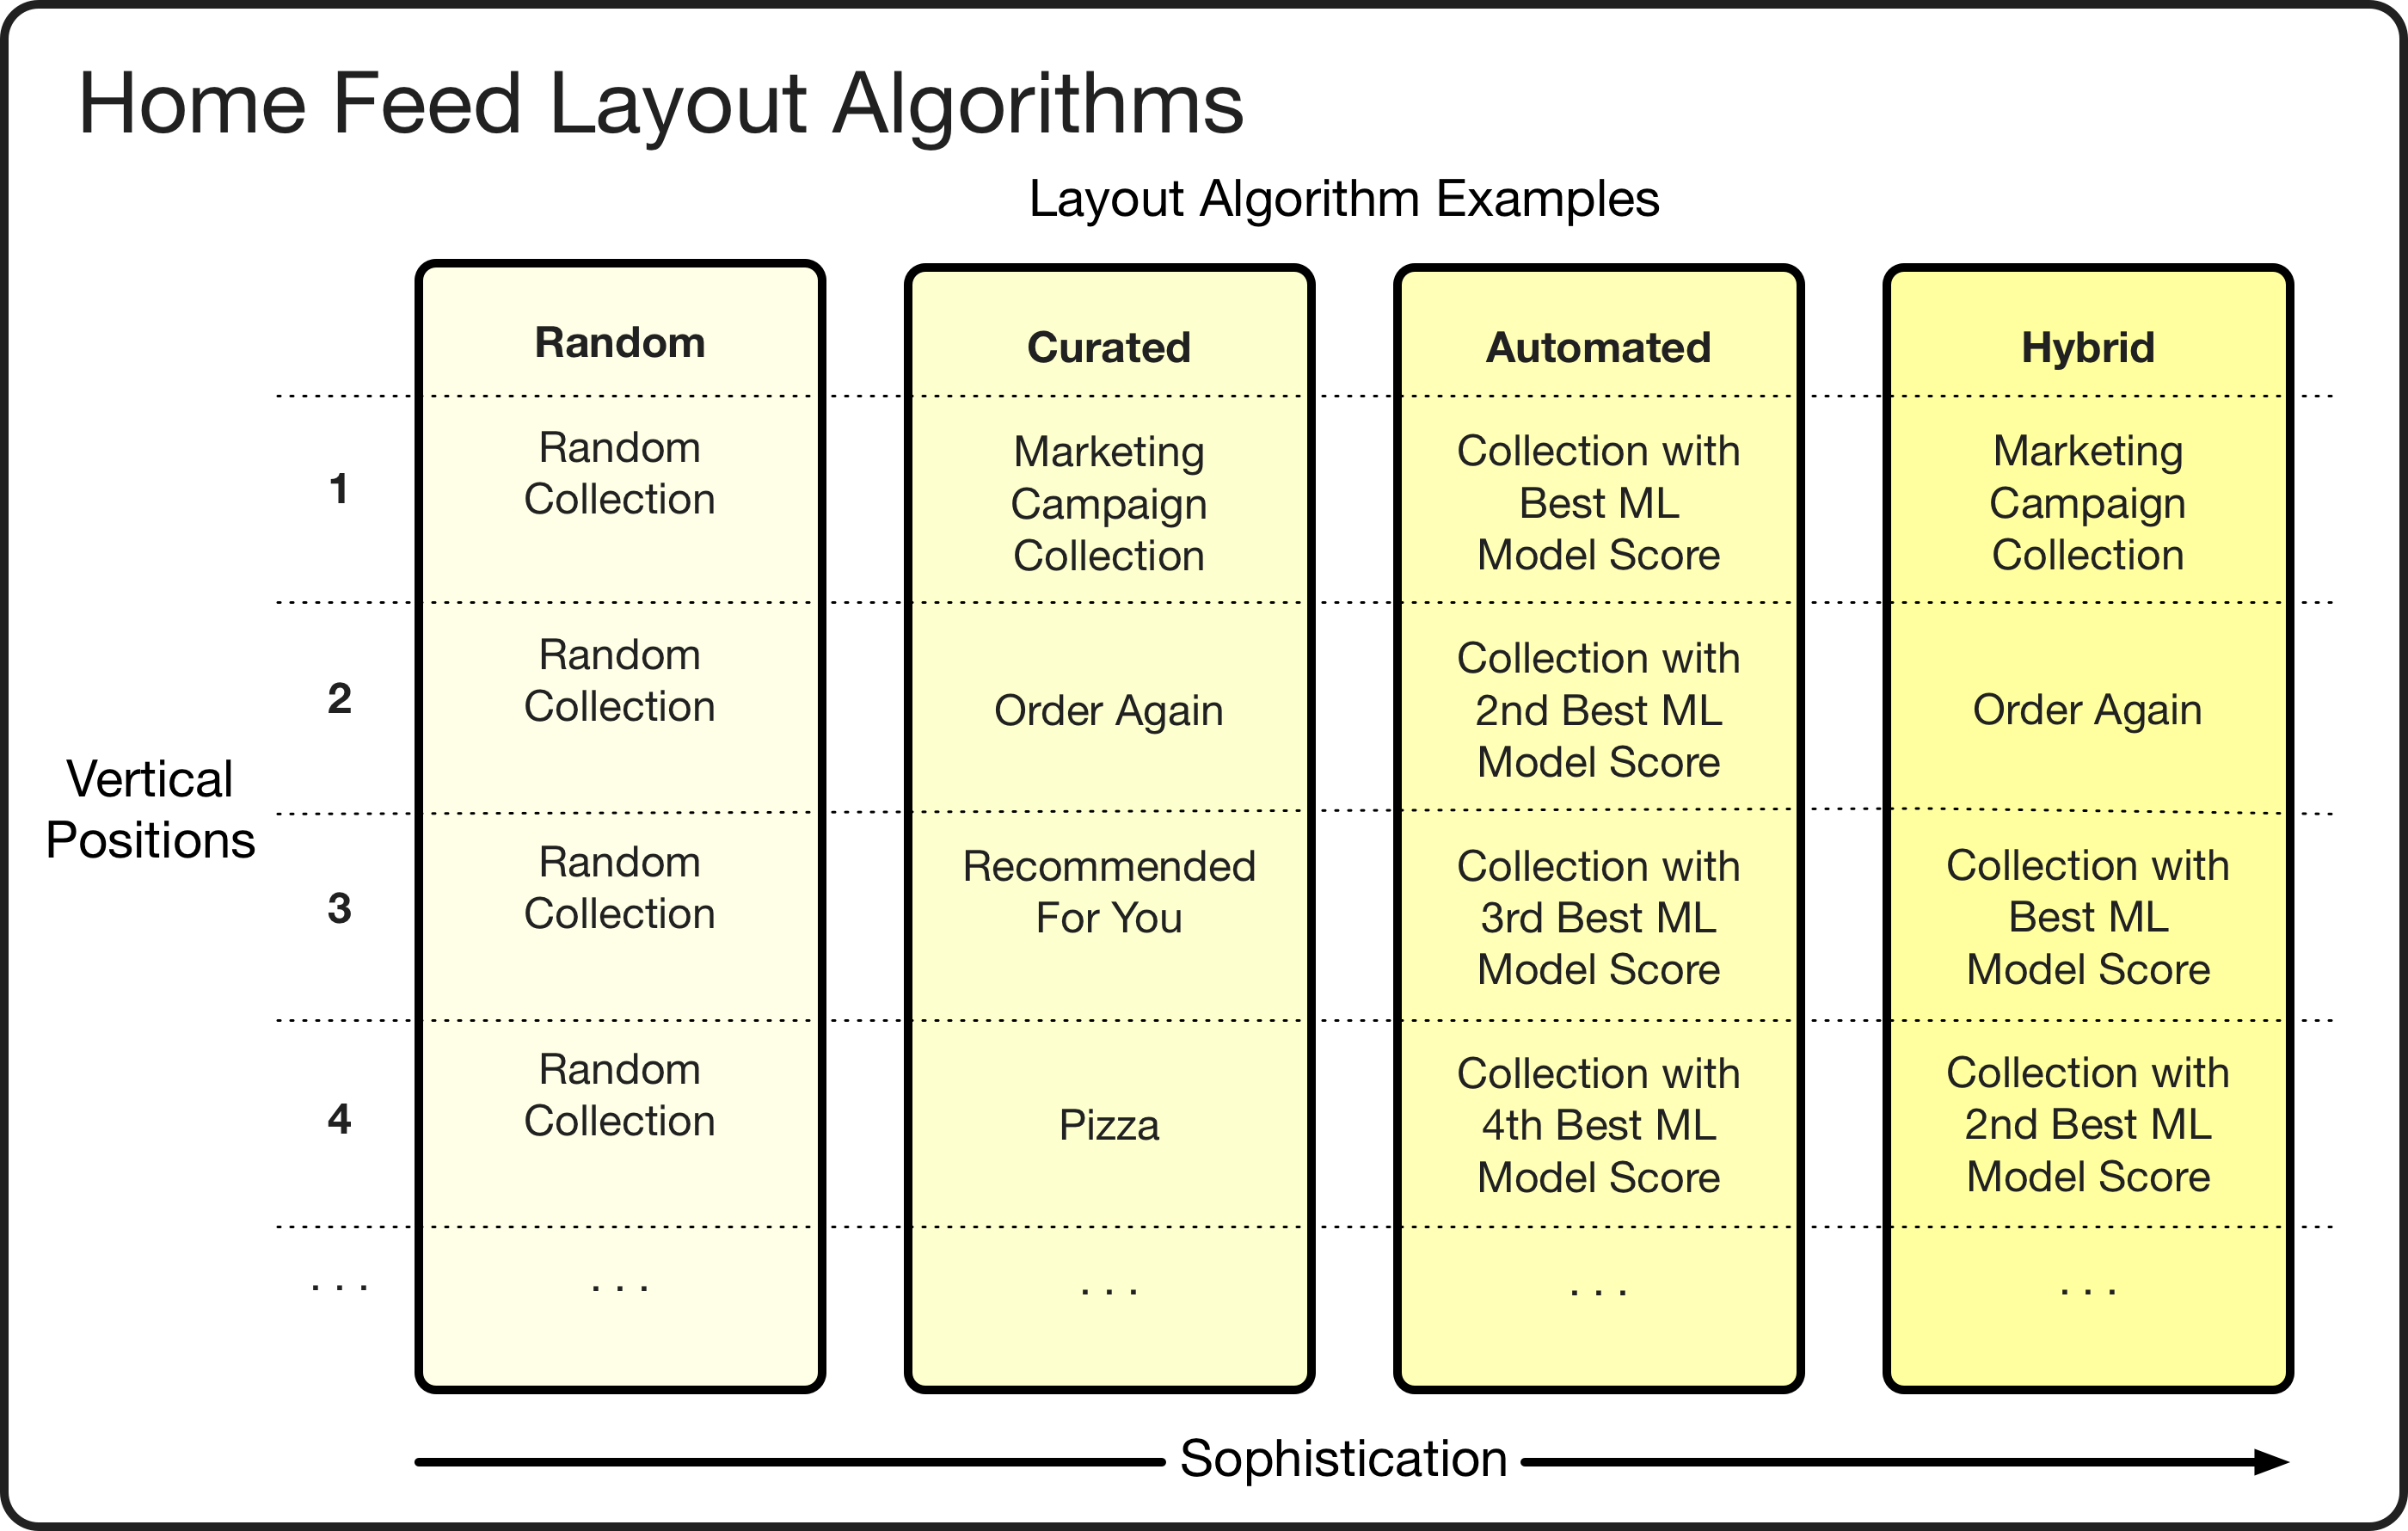 *Home feed layout algorithm examples.*